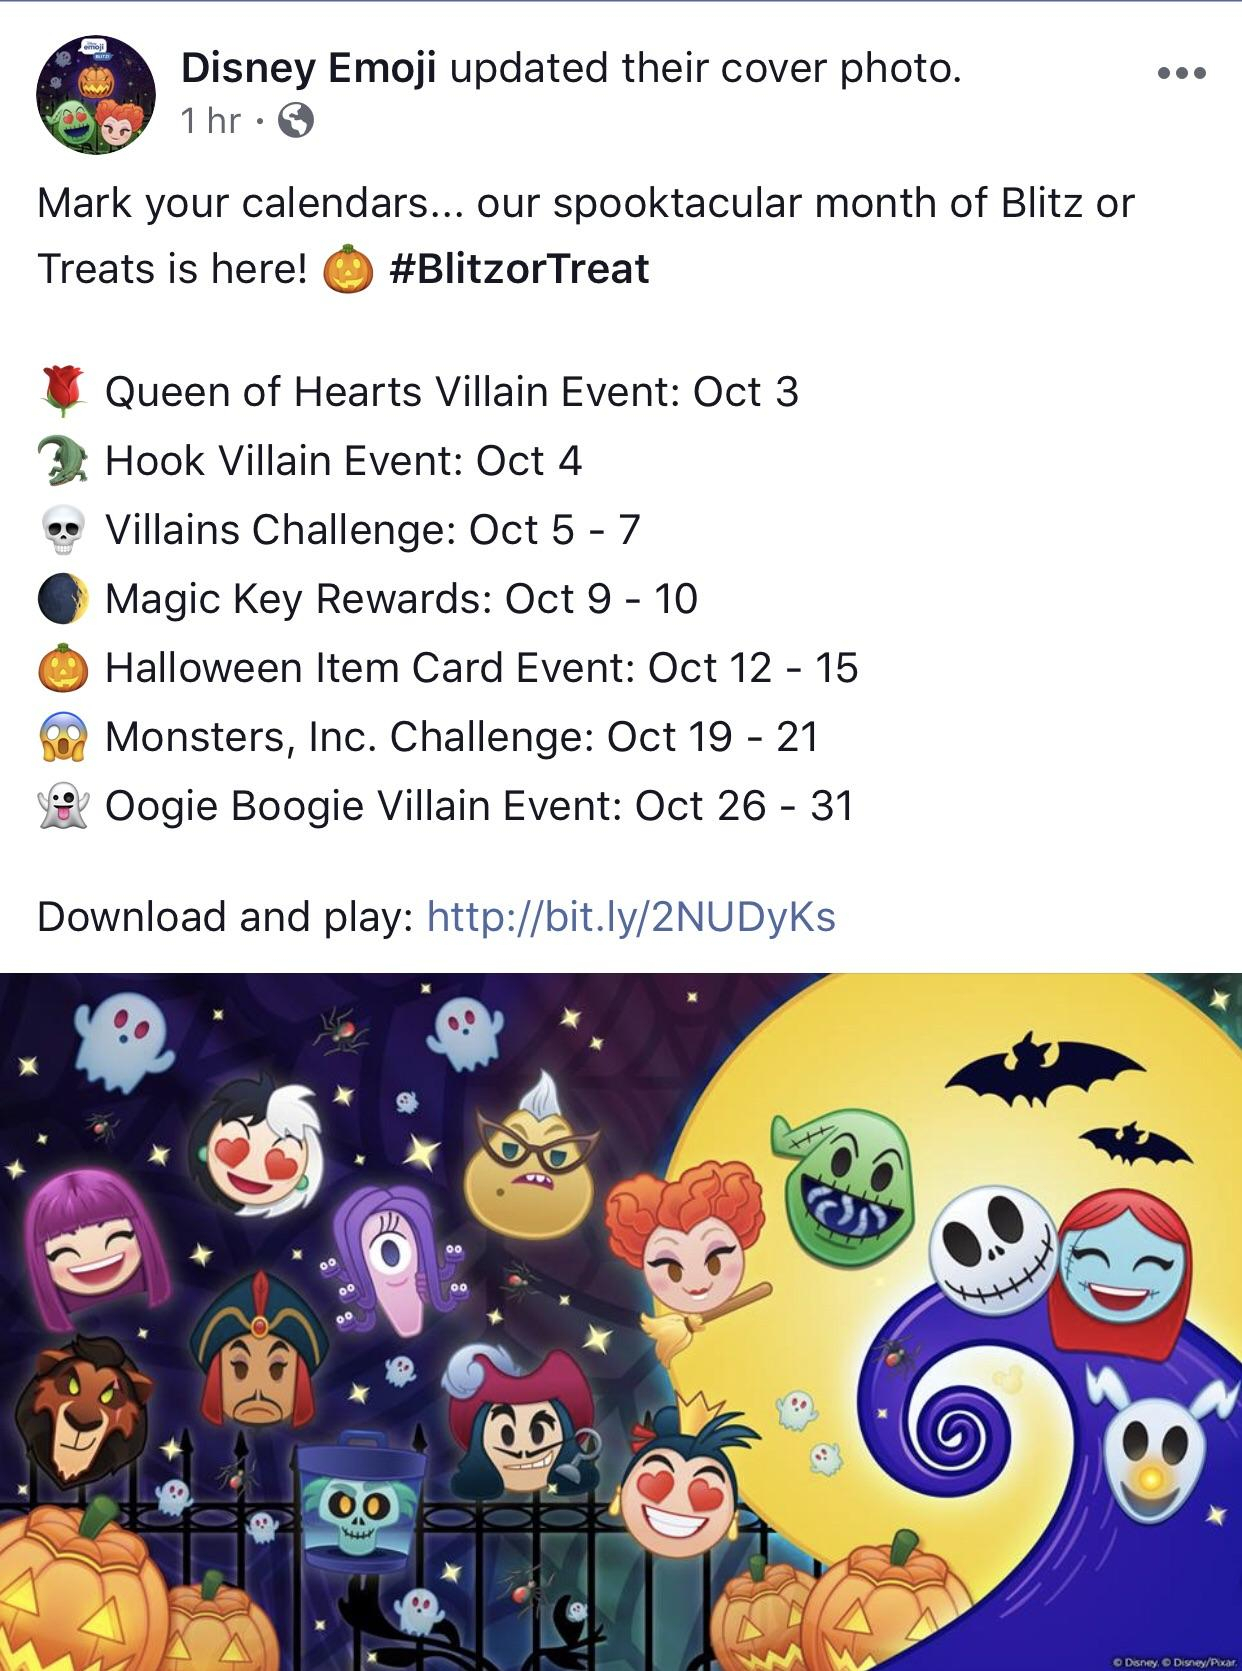 So Glad They're Giving Us The Rundown Every Month within Disney Emoji Blitz Event Calendar 2020